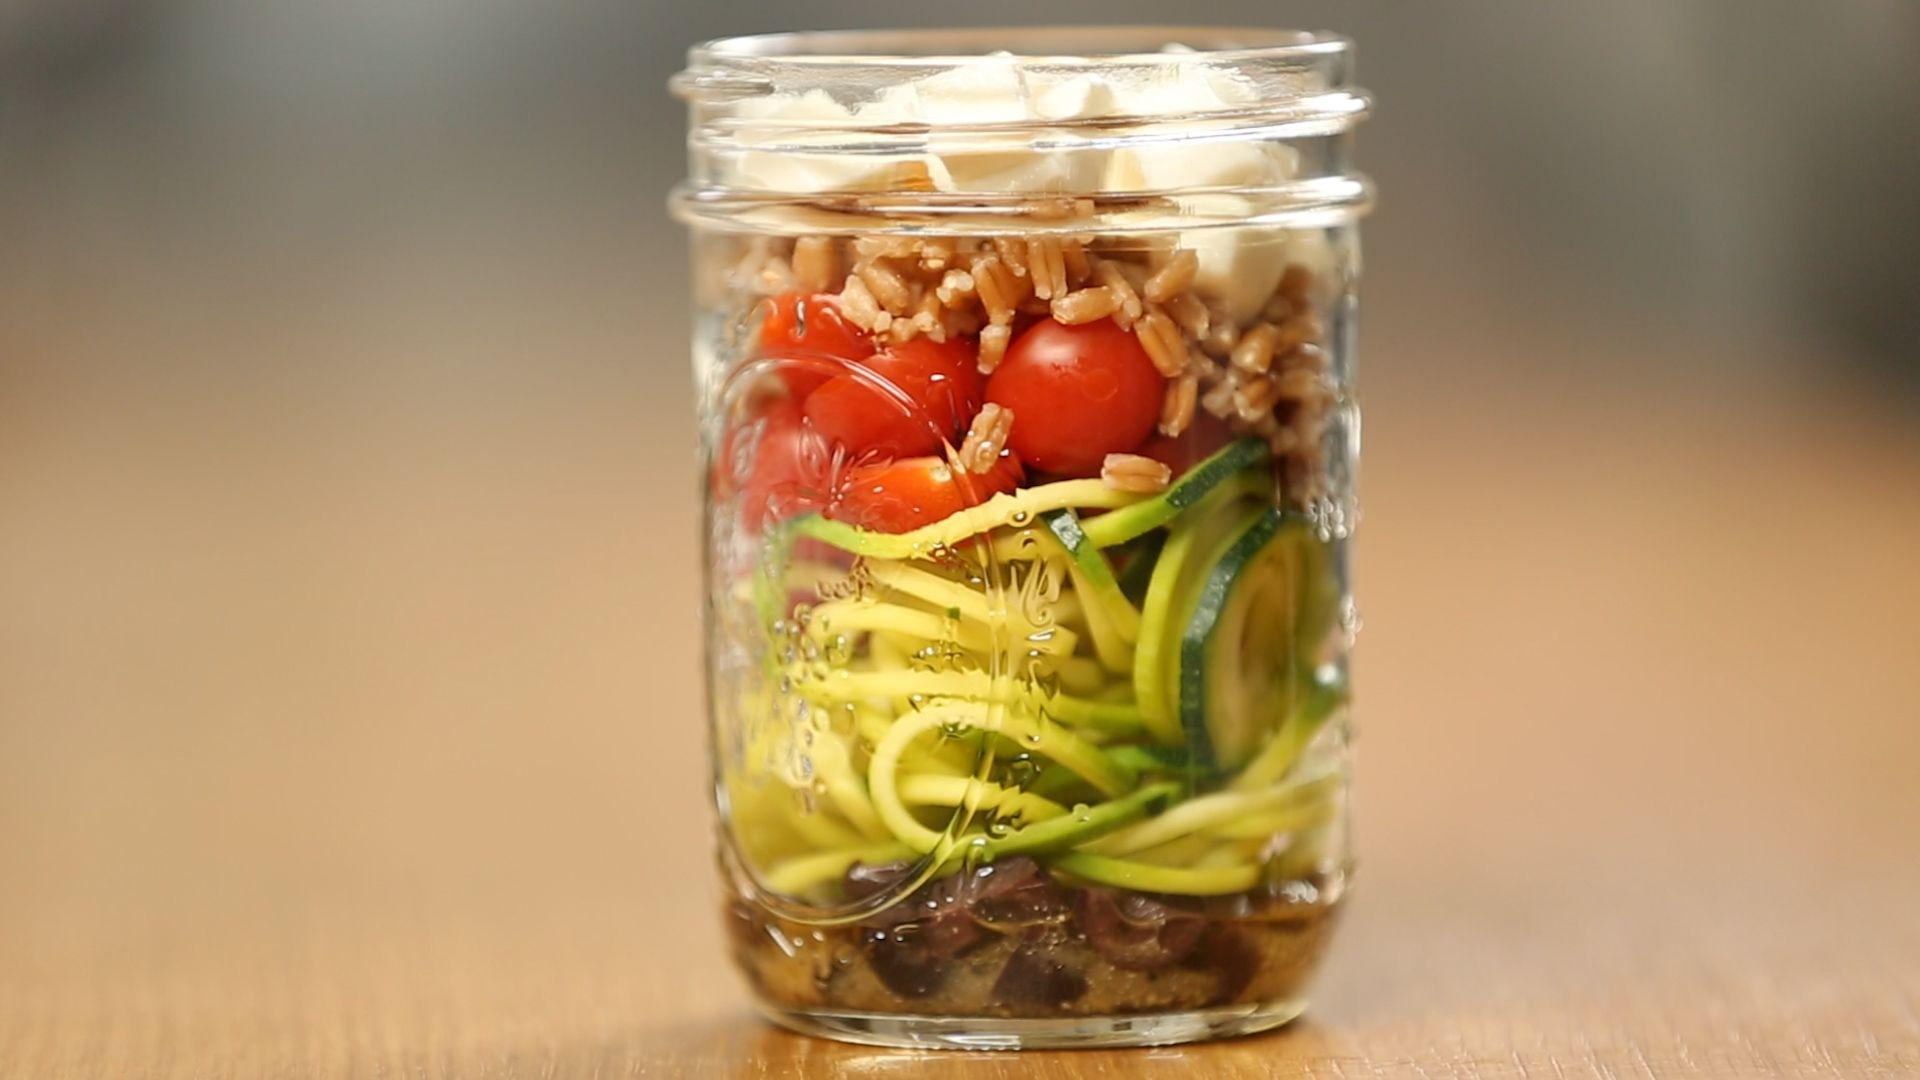 How to Make a Healthy Zucchini Noodle Mason Jar Salad